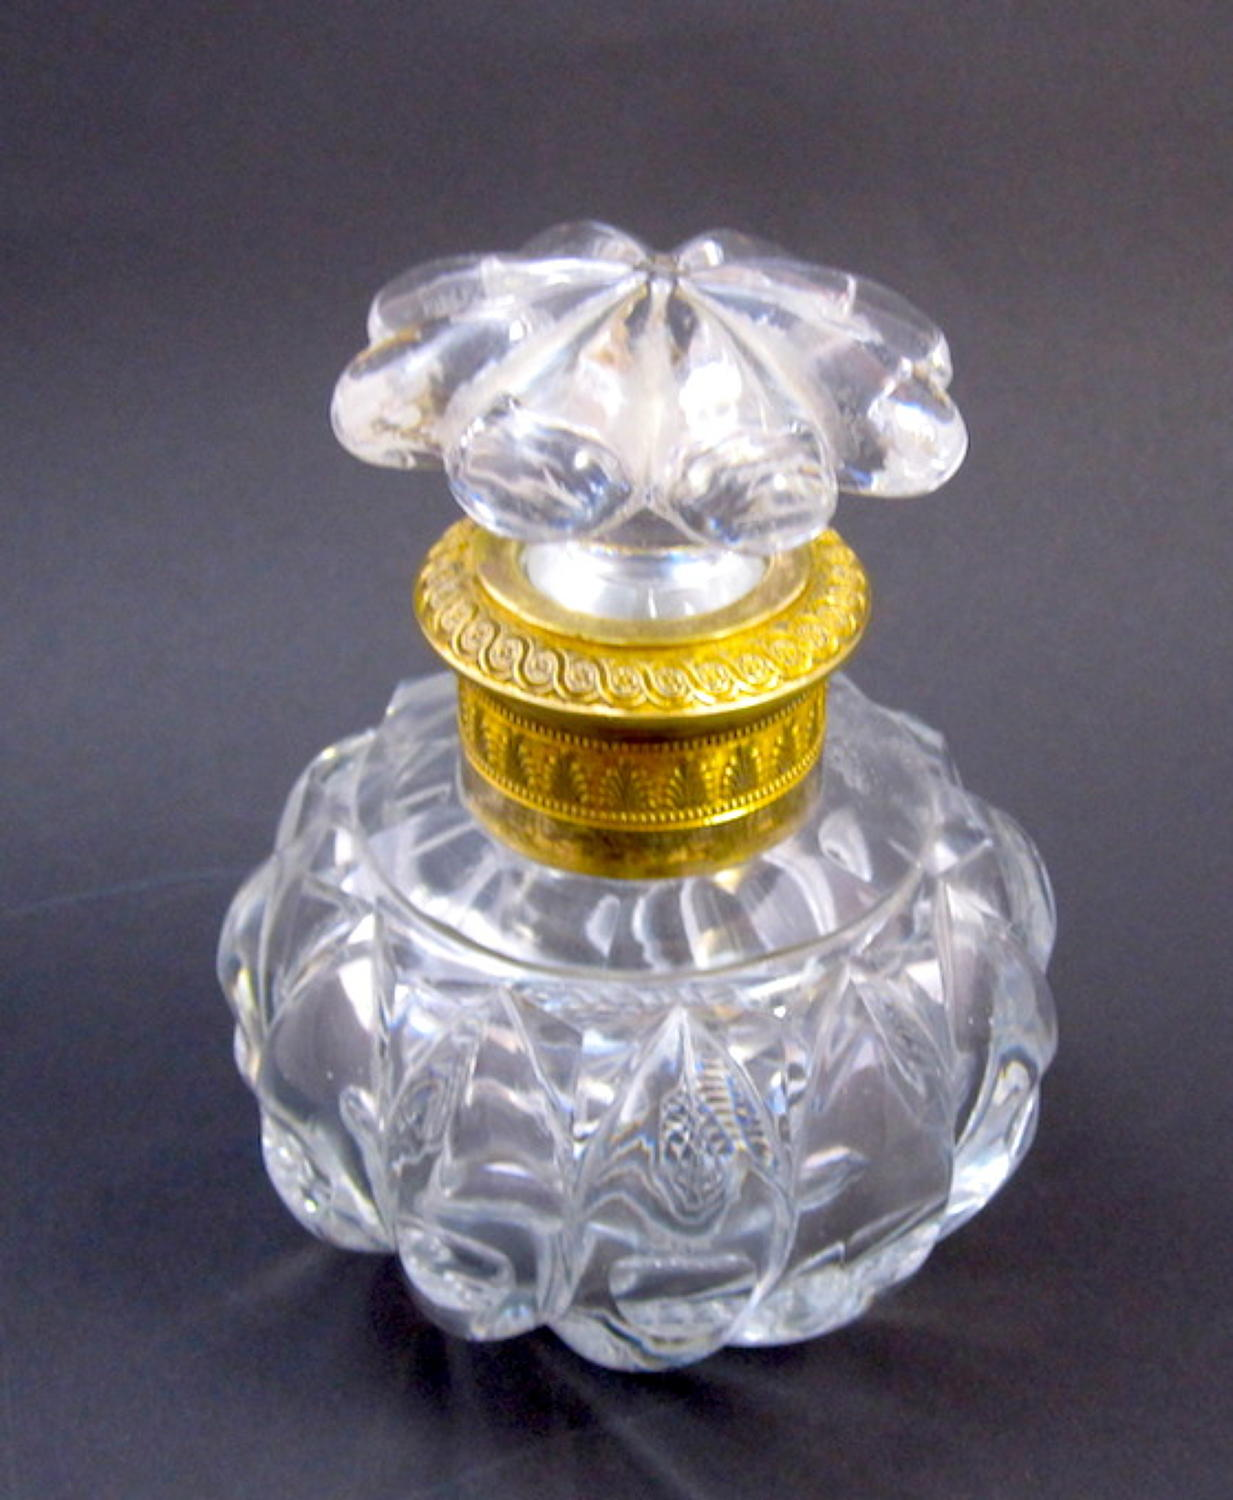 How to Identify Baccarat Crystal